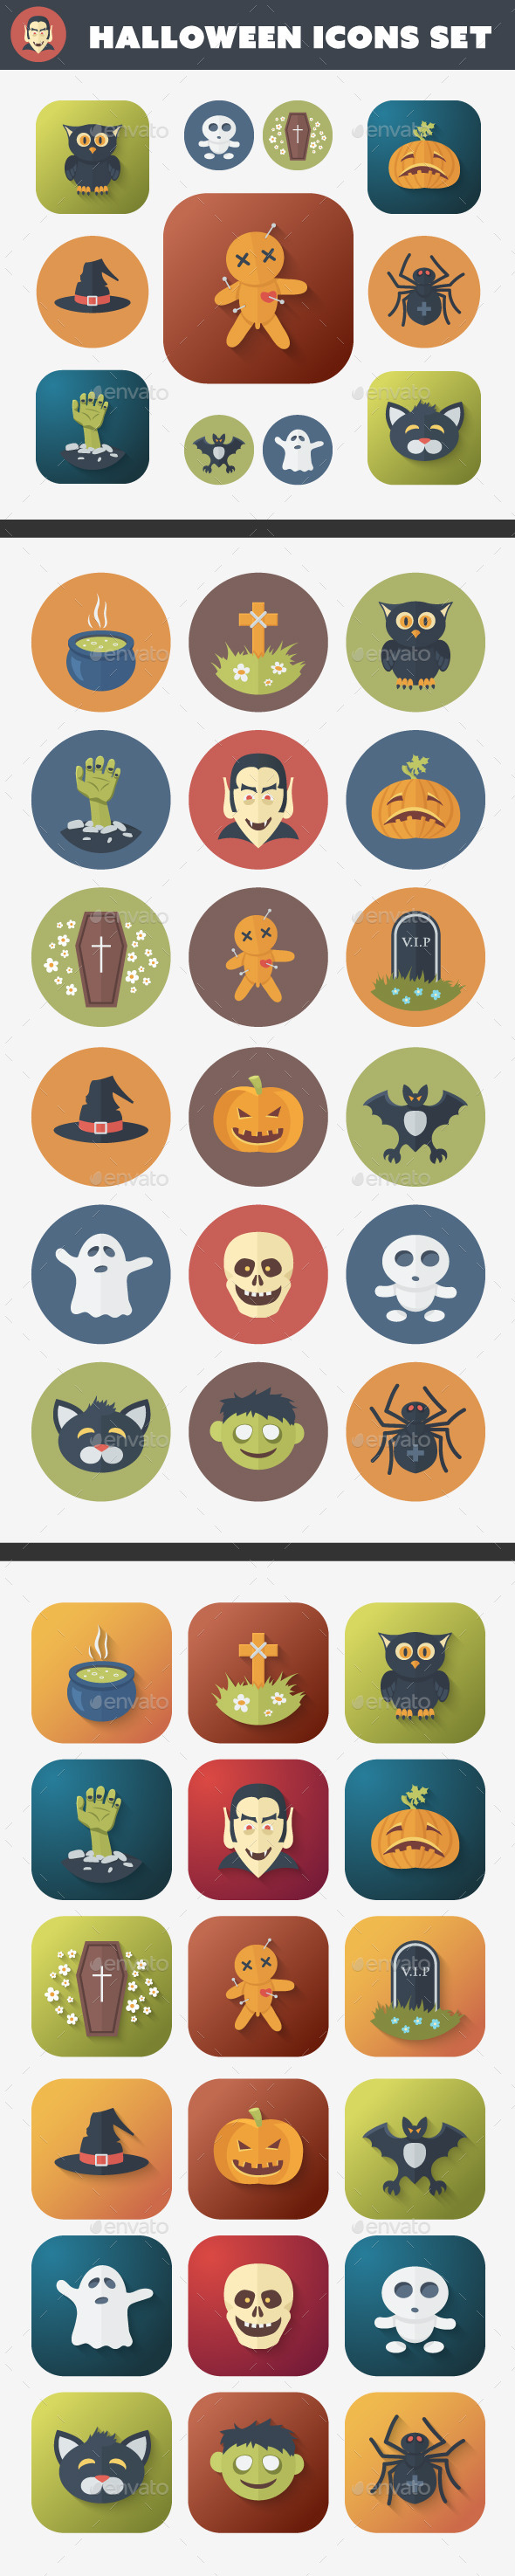 GraphicRiver Halloween Flat Icons Set 9241289